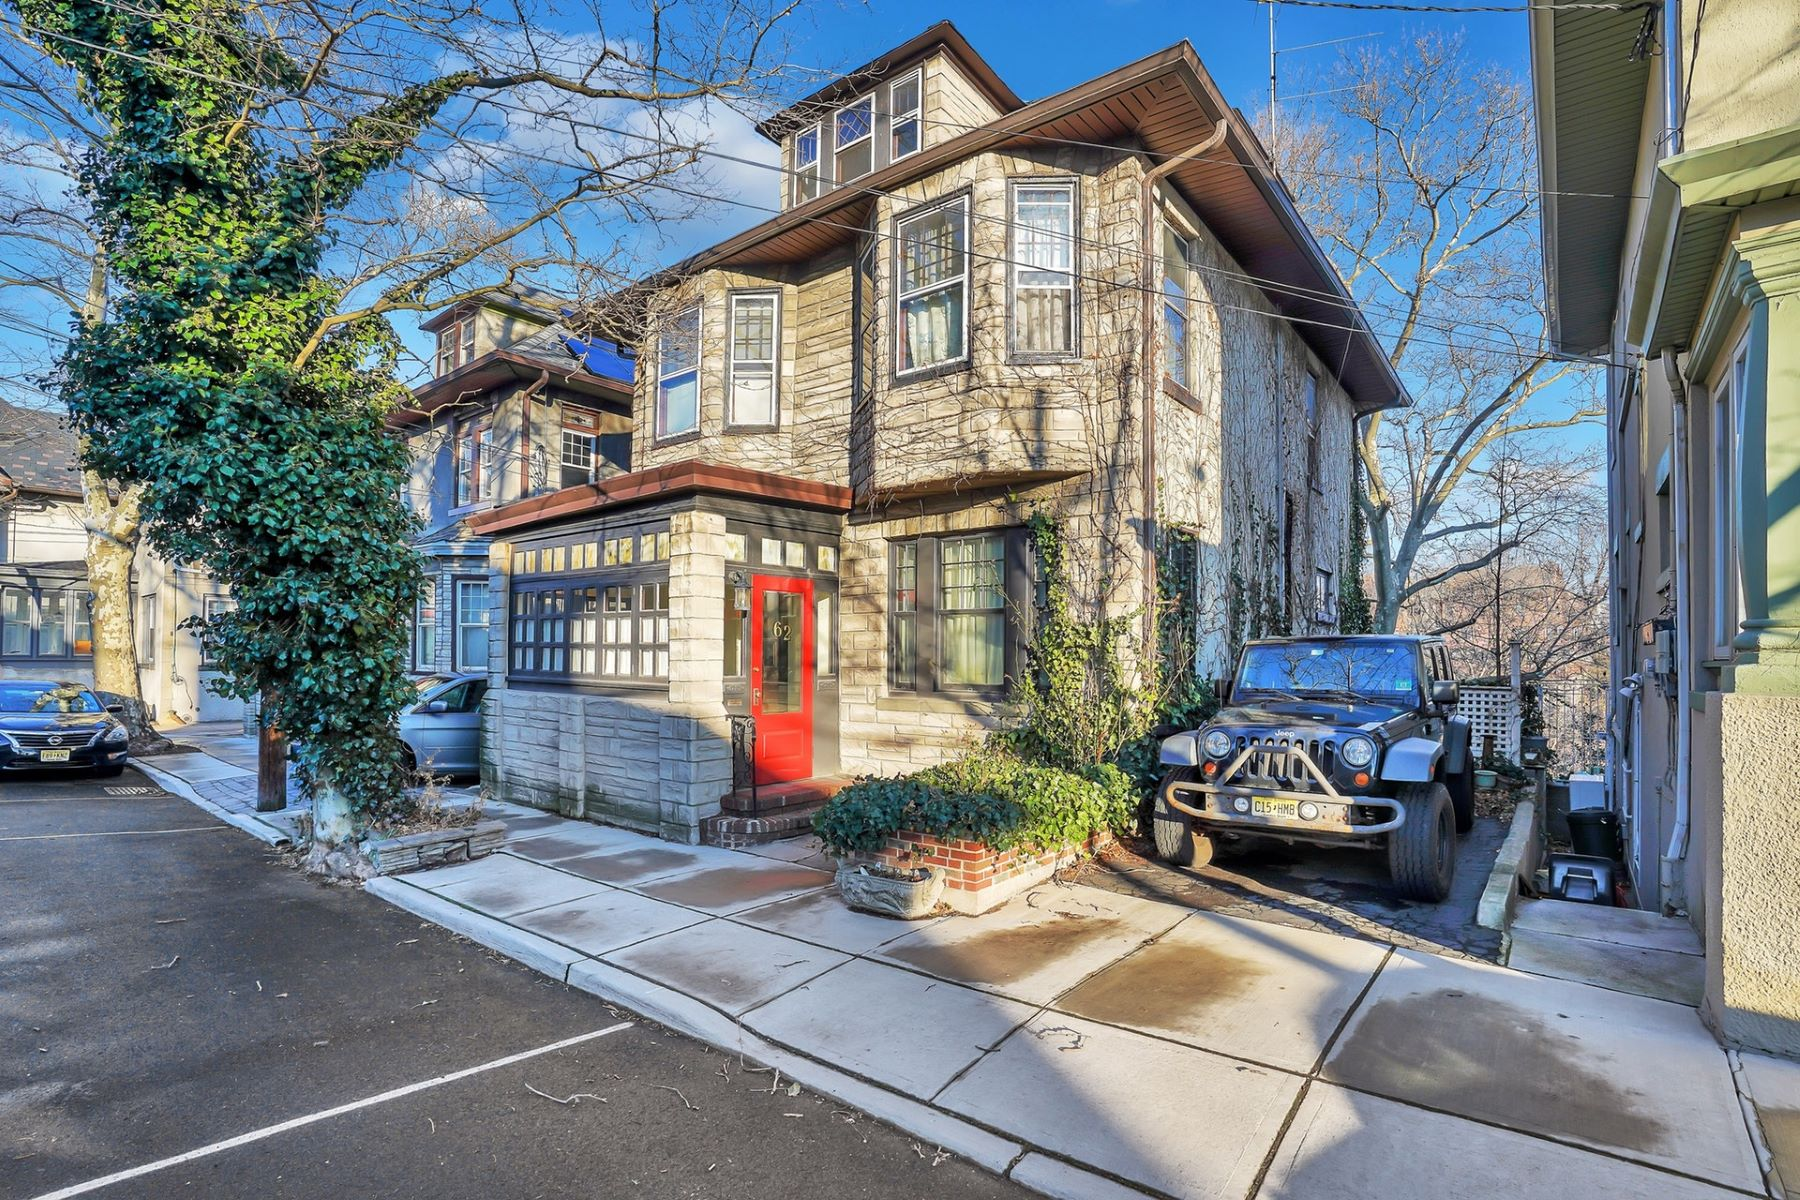 Single Family Homes for Sale at Located in Weehawken's favorite location of Sterling Ave 62 Sterling Ave, Weehawken, New Jersey 07086 United States